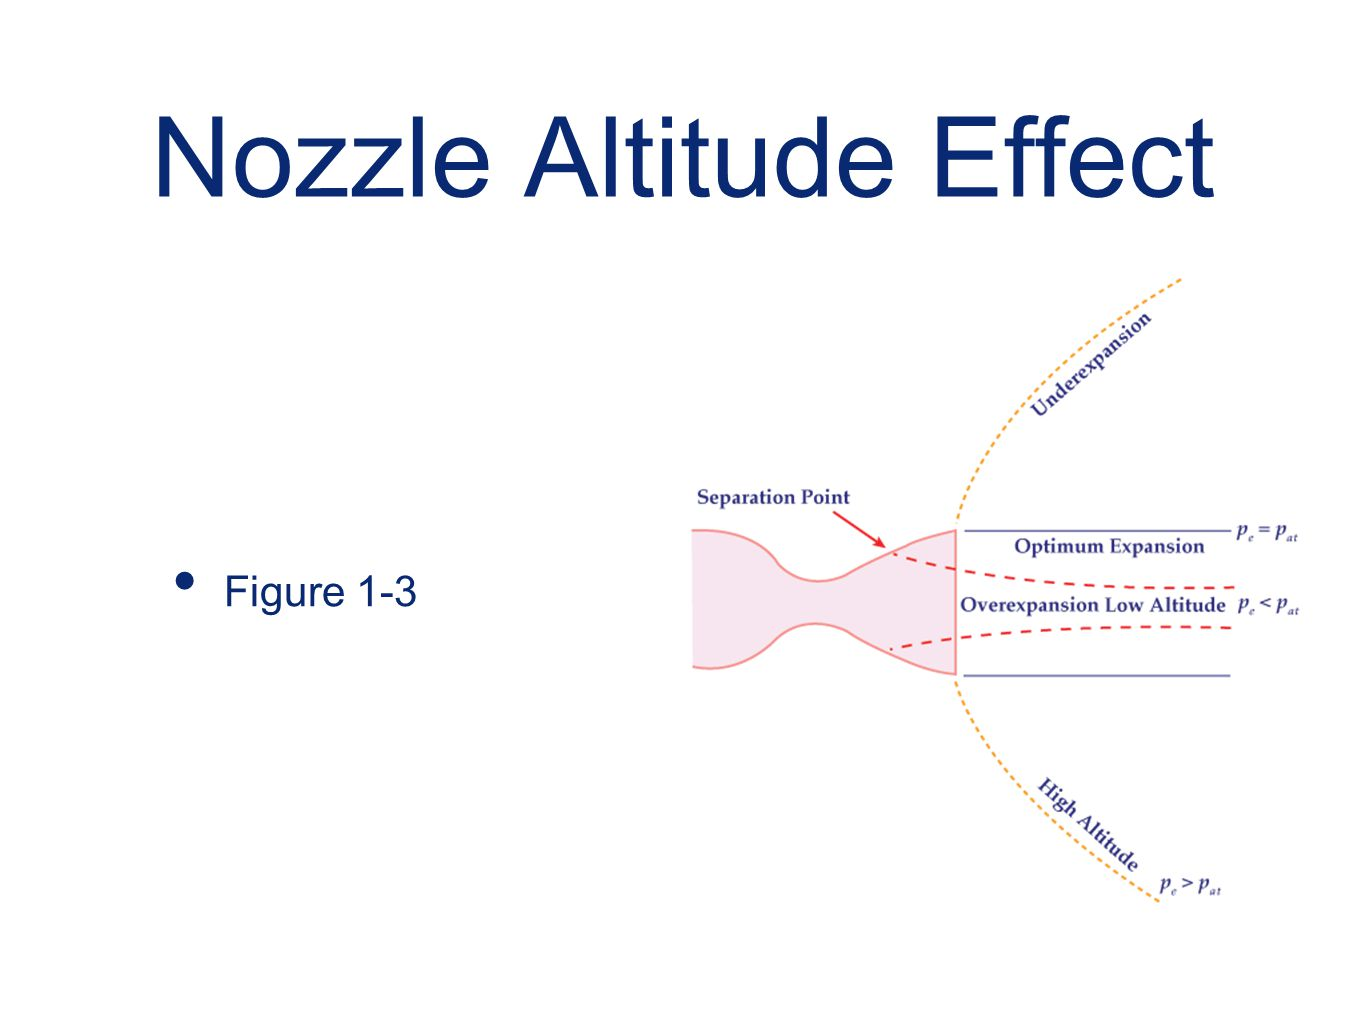 Nozzle Altitude Effect Figure 1-3